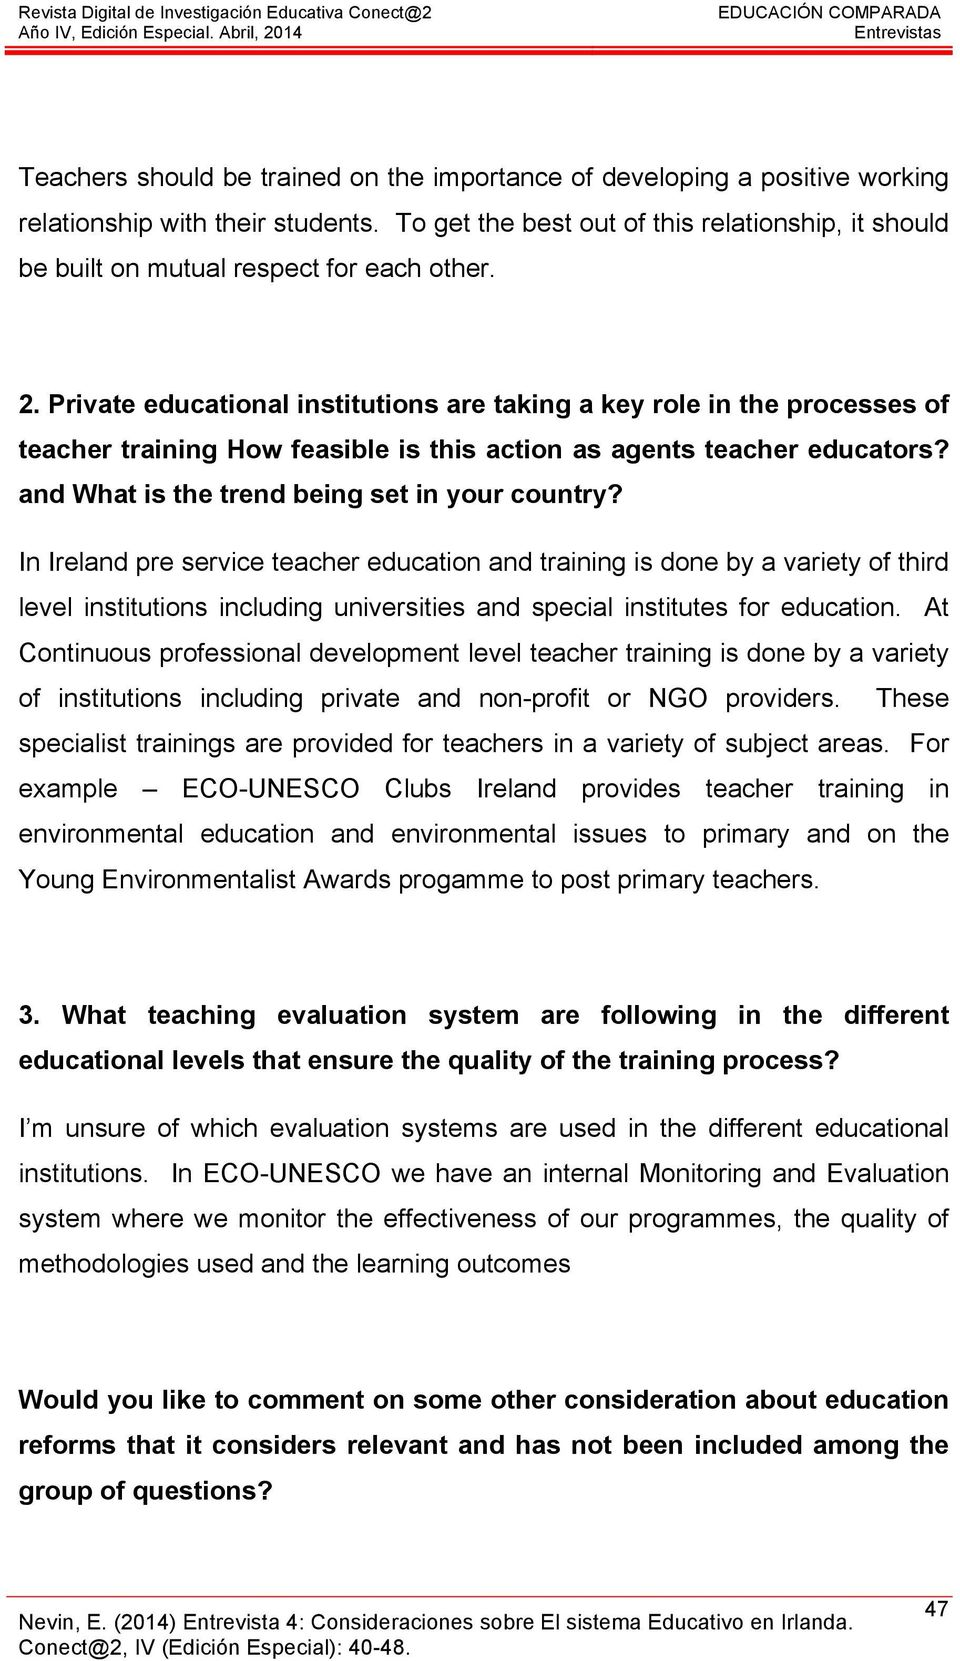 Private educational institutions are taking a key role in the processes of teacher training How feasible is this action as agents teacher educators? and What is the trend being set in your country?